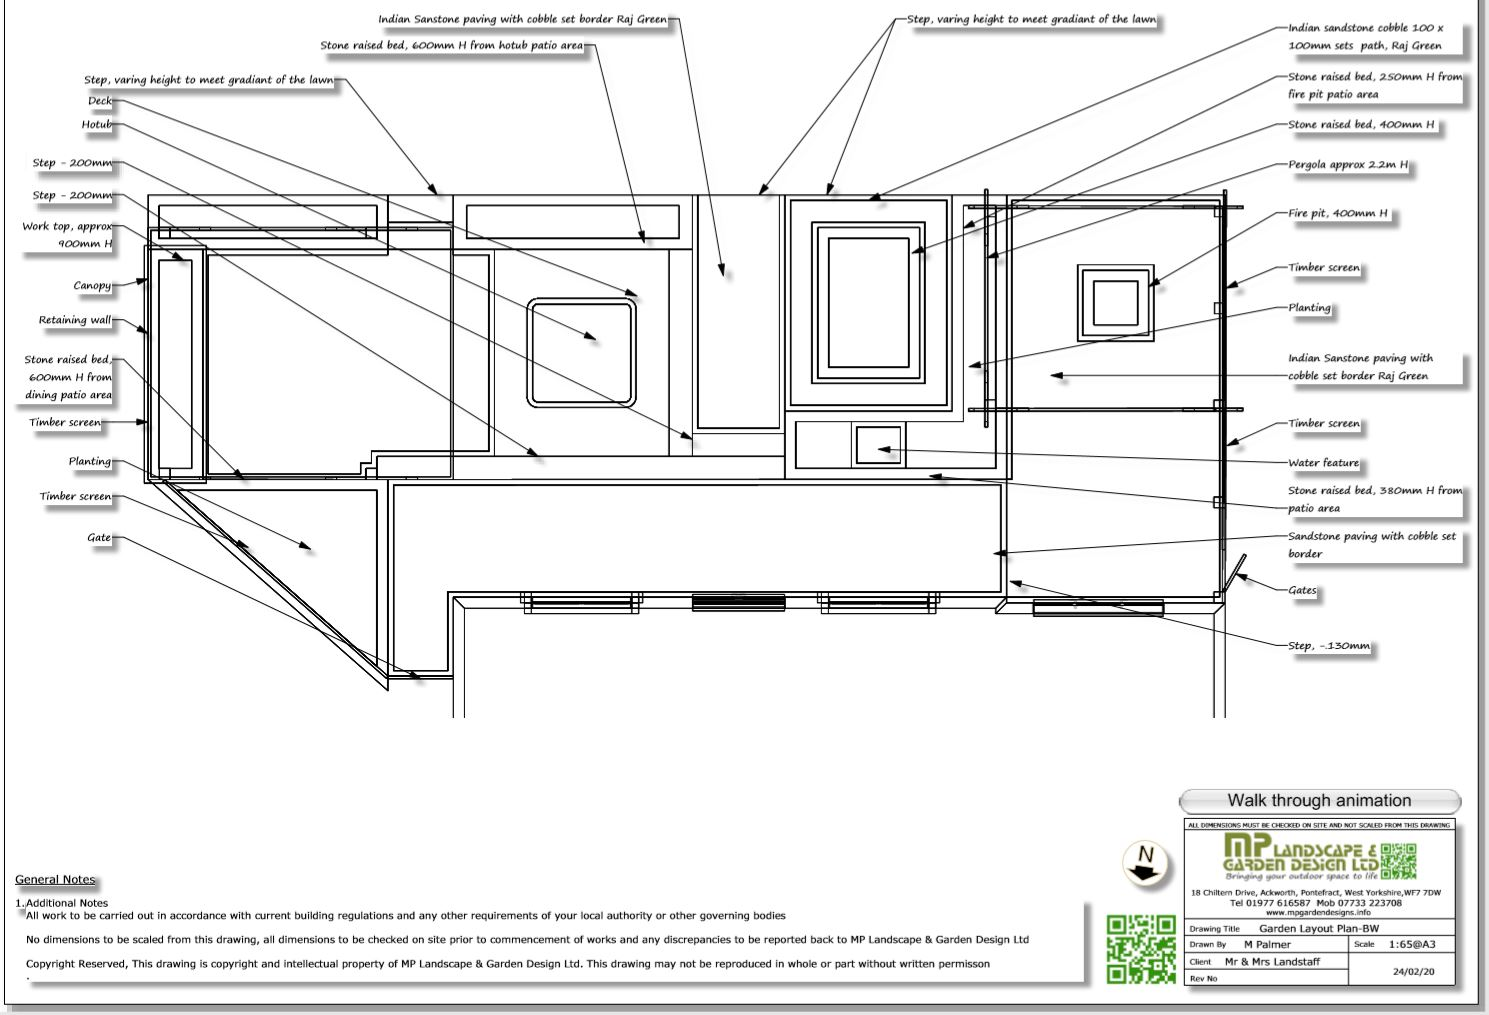 4, Patio layout plan for a property in Wakefield